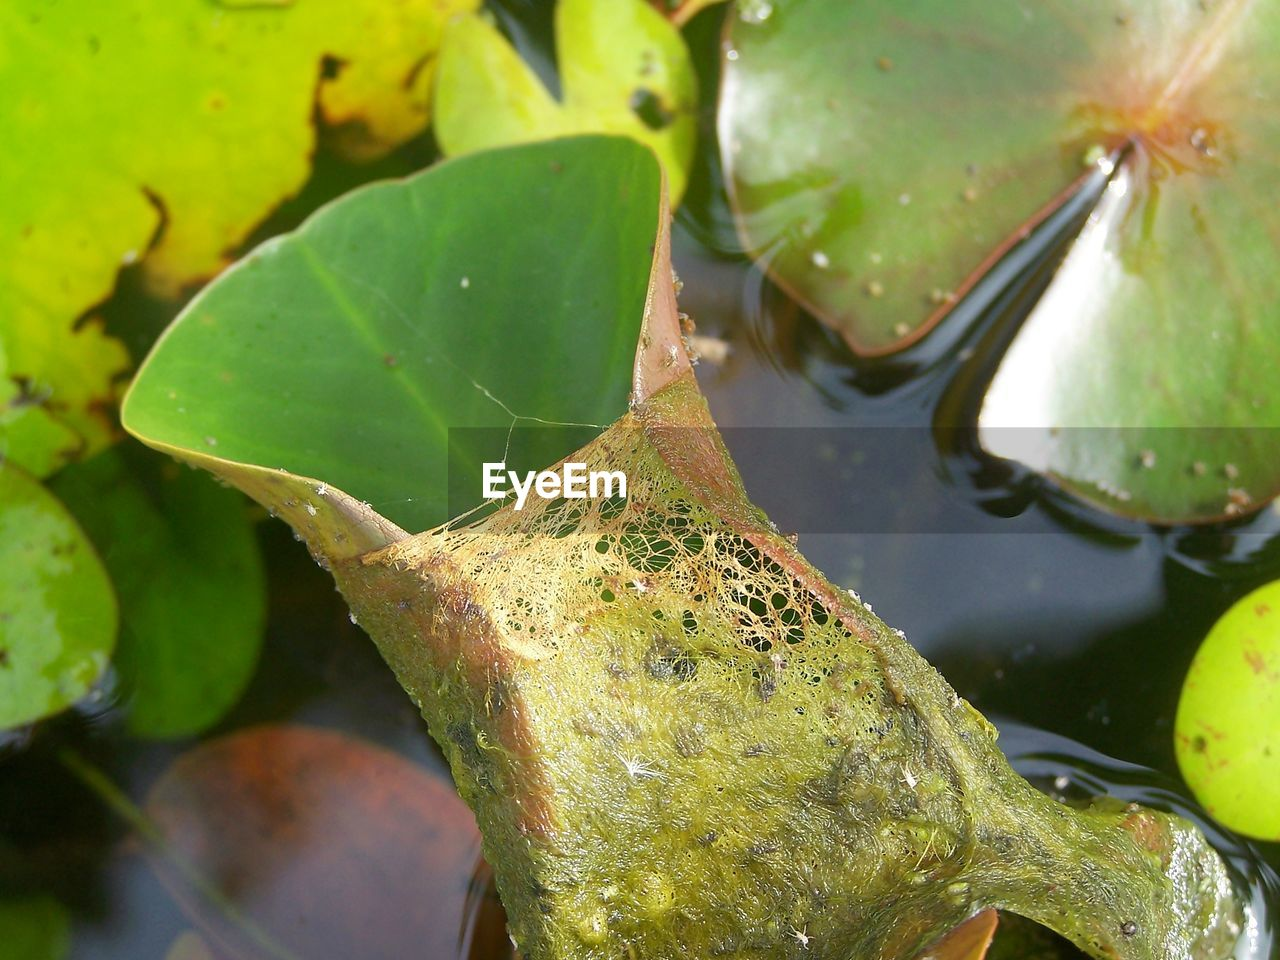 leaf, plant part, green color, plant, close-up, water, no people, nature, growth, day, floating, water lily, beauty in nature, wet, lake, outdoors, focus on foreground, floating on water, leaves